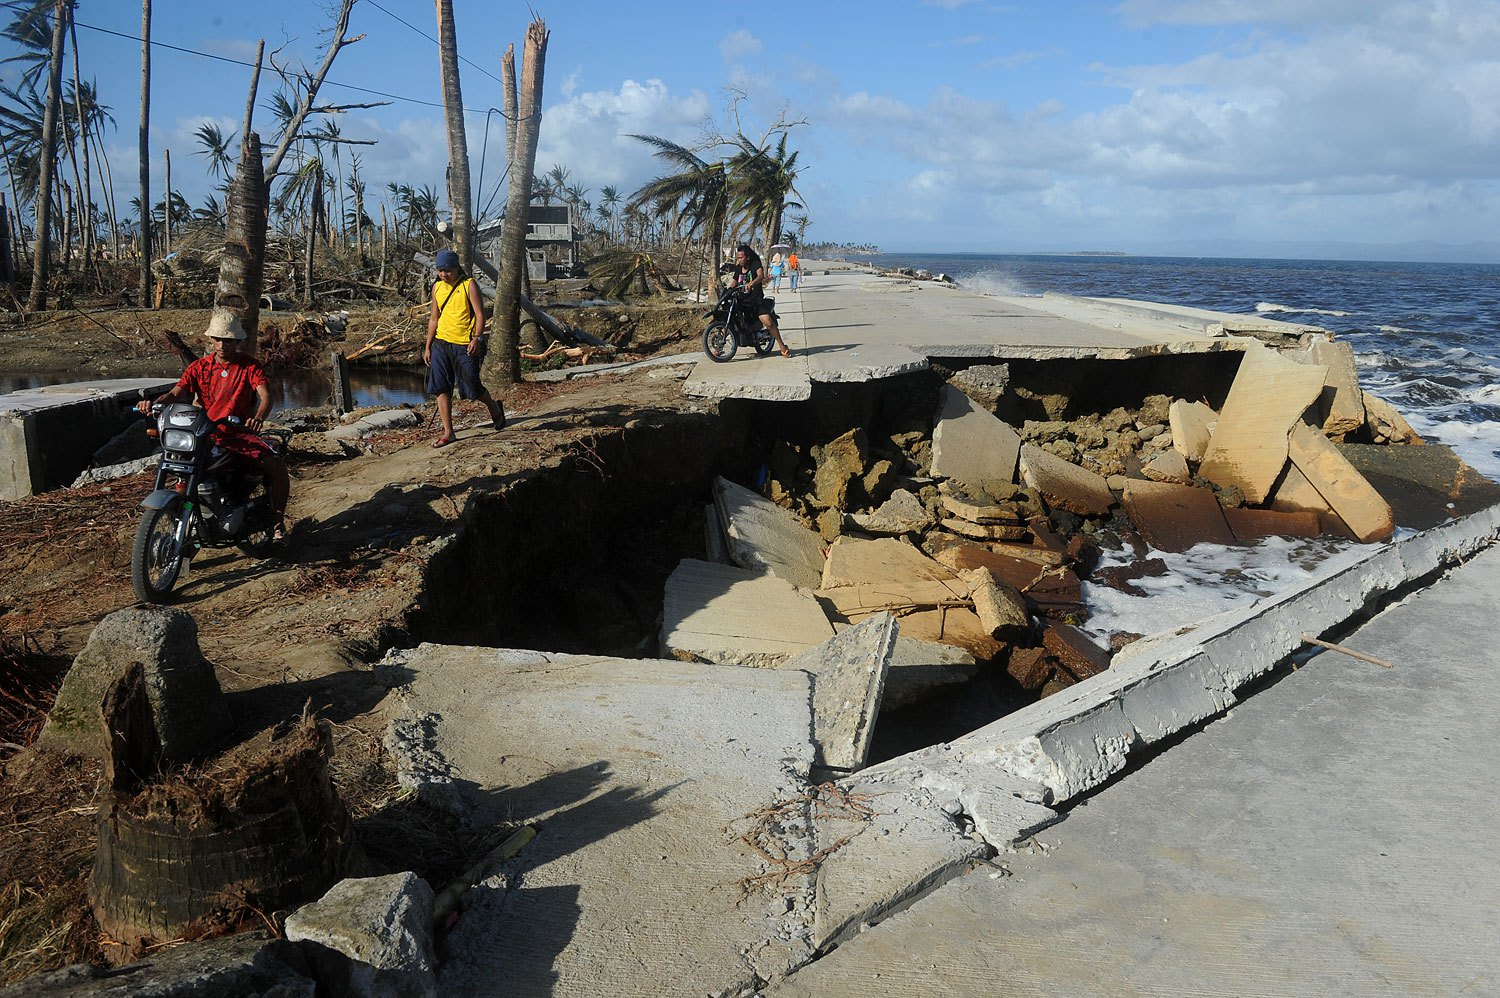 A motorist crosses a collapsed highway caused by the storm surge in Palo, in Leyte province, on Nov. 10, 2013